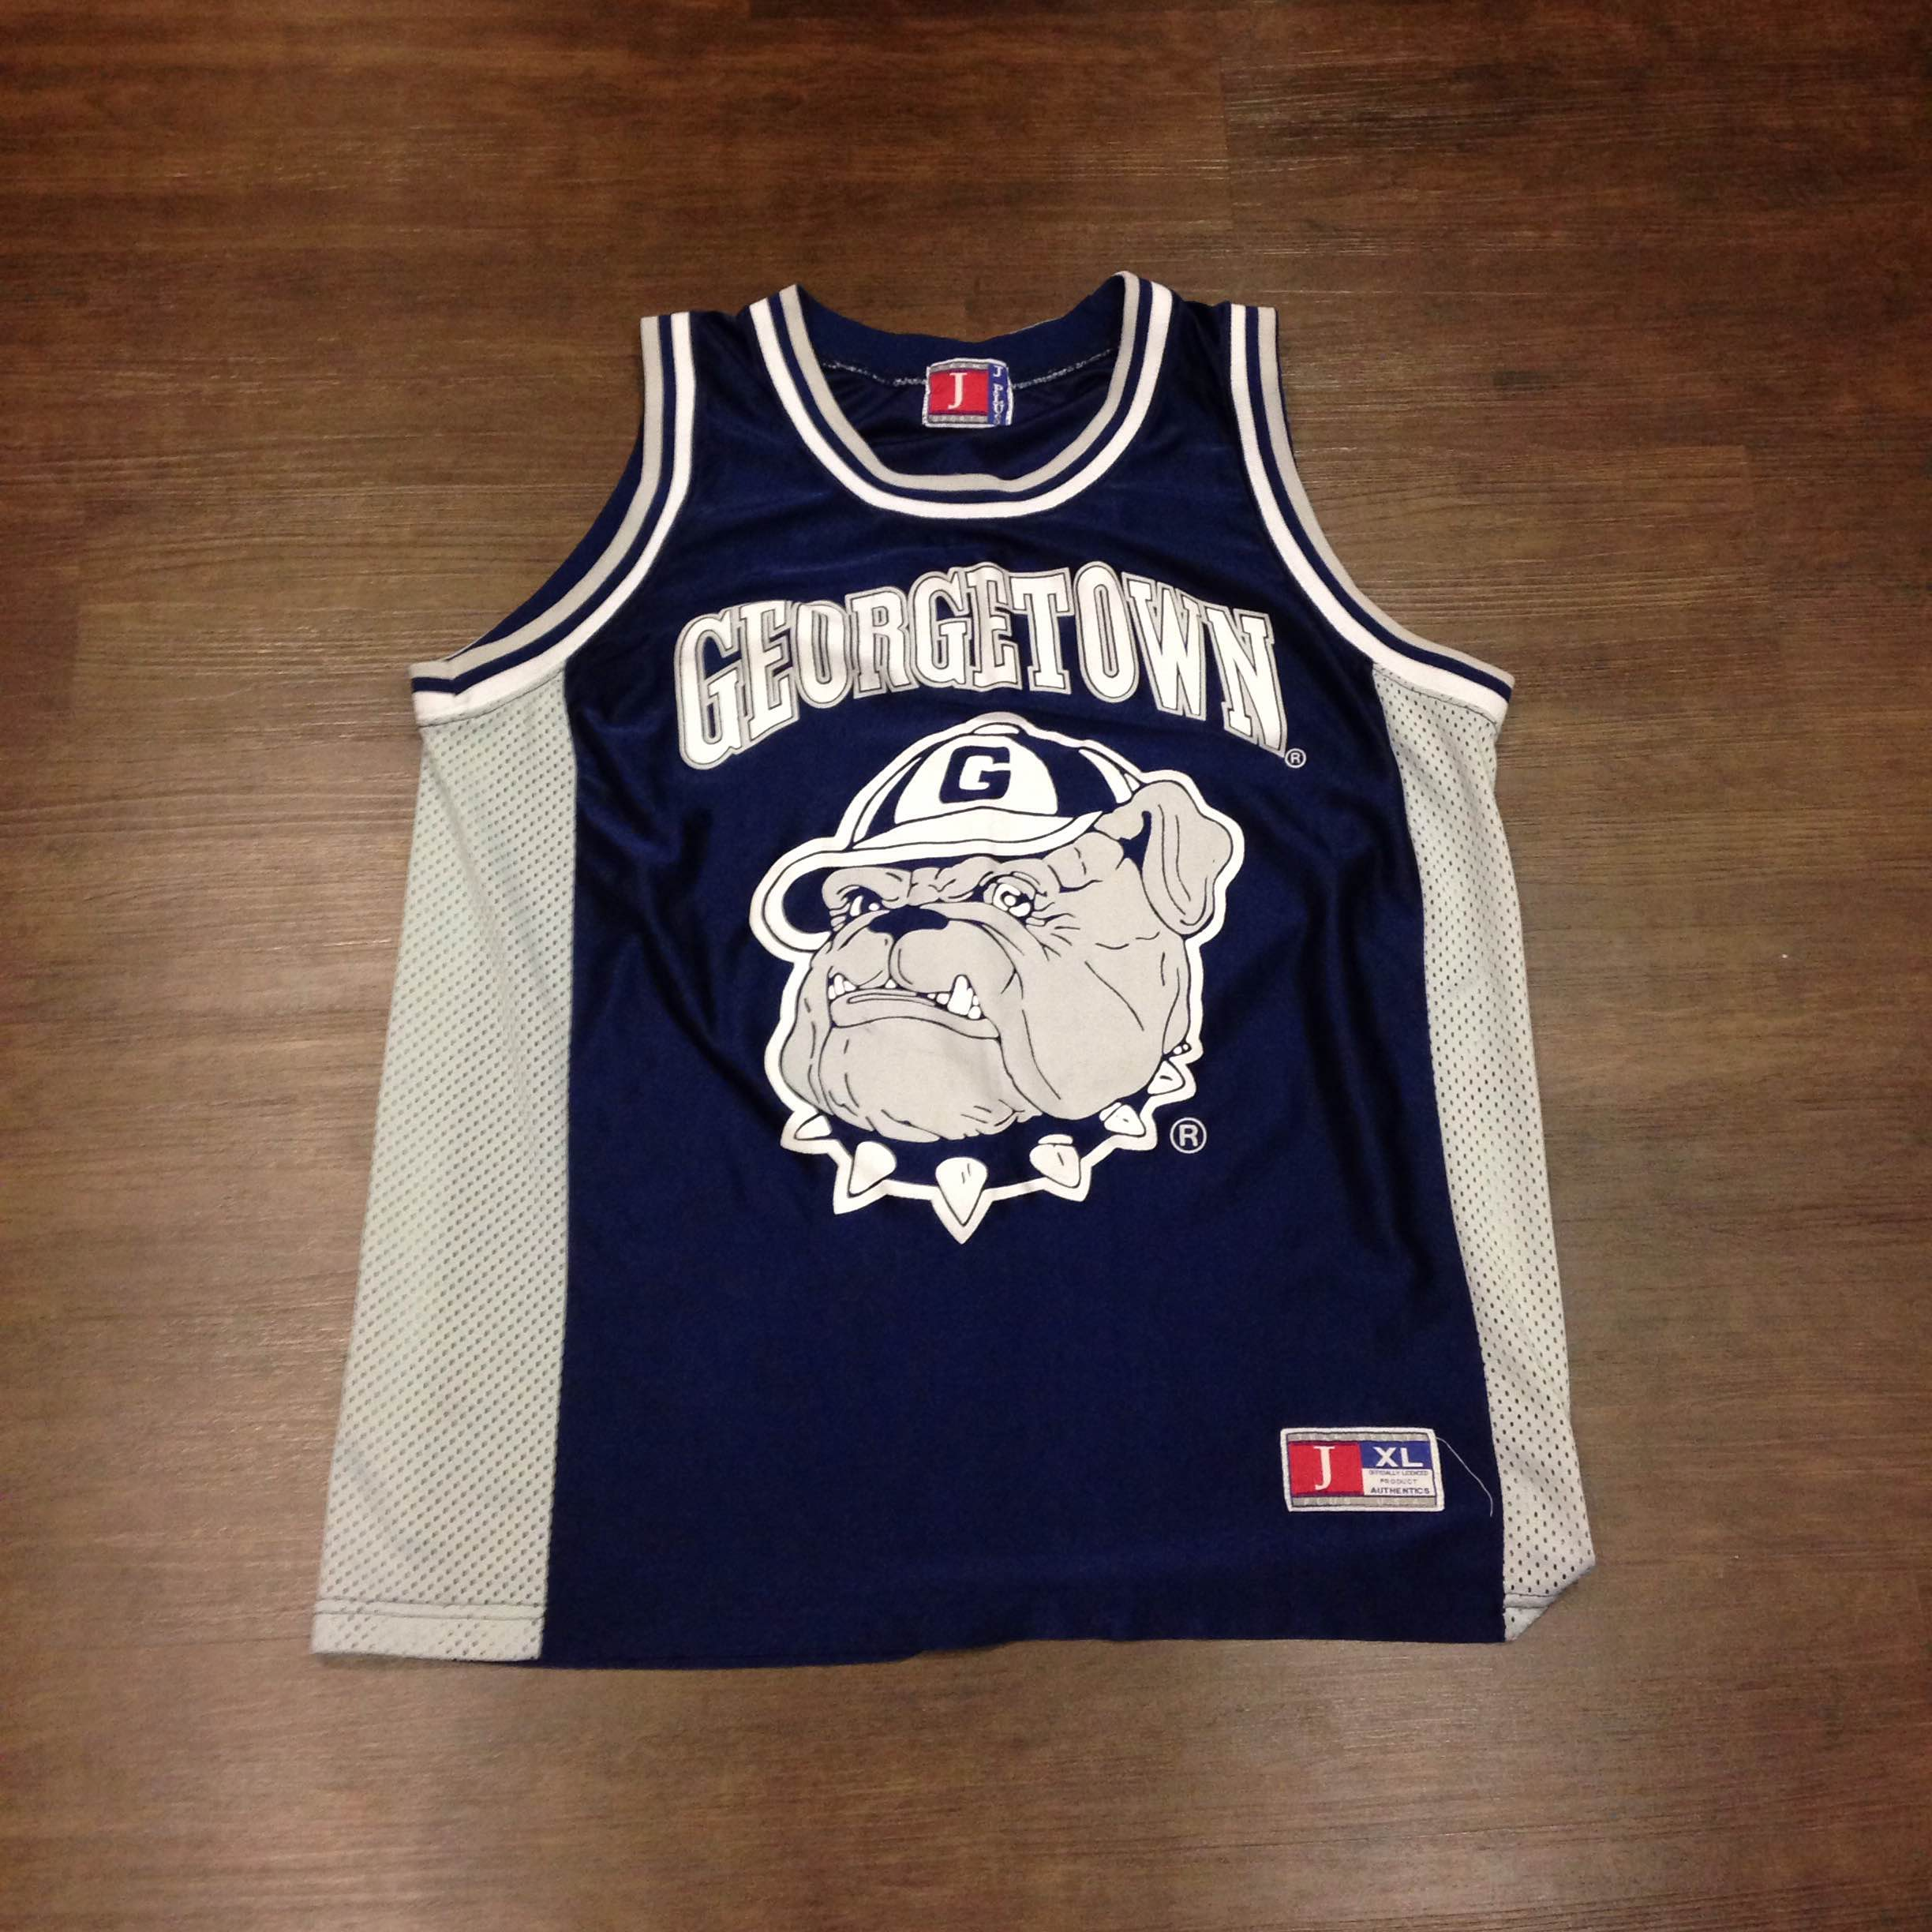 Georgetown Hoyas 90s Basketball Jersey XL · Kings Court Vintage ... 771eced81